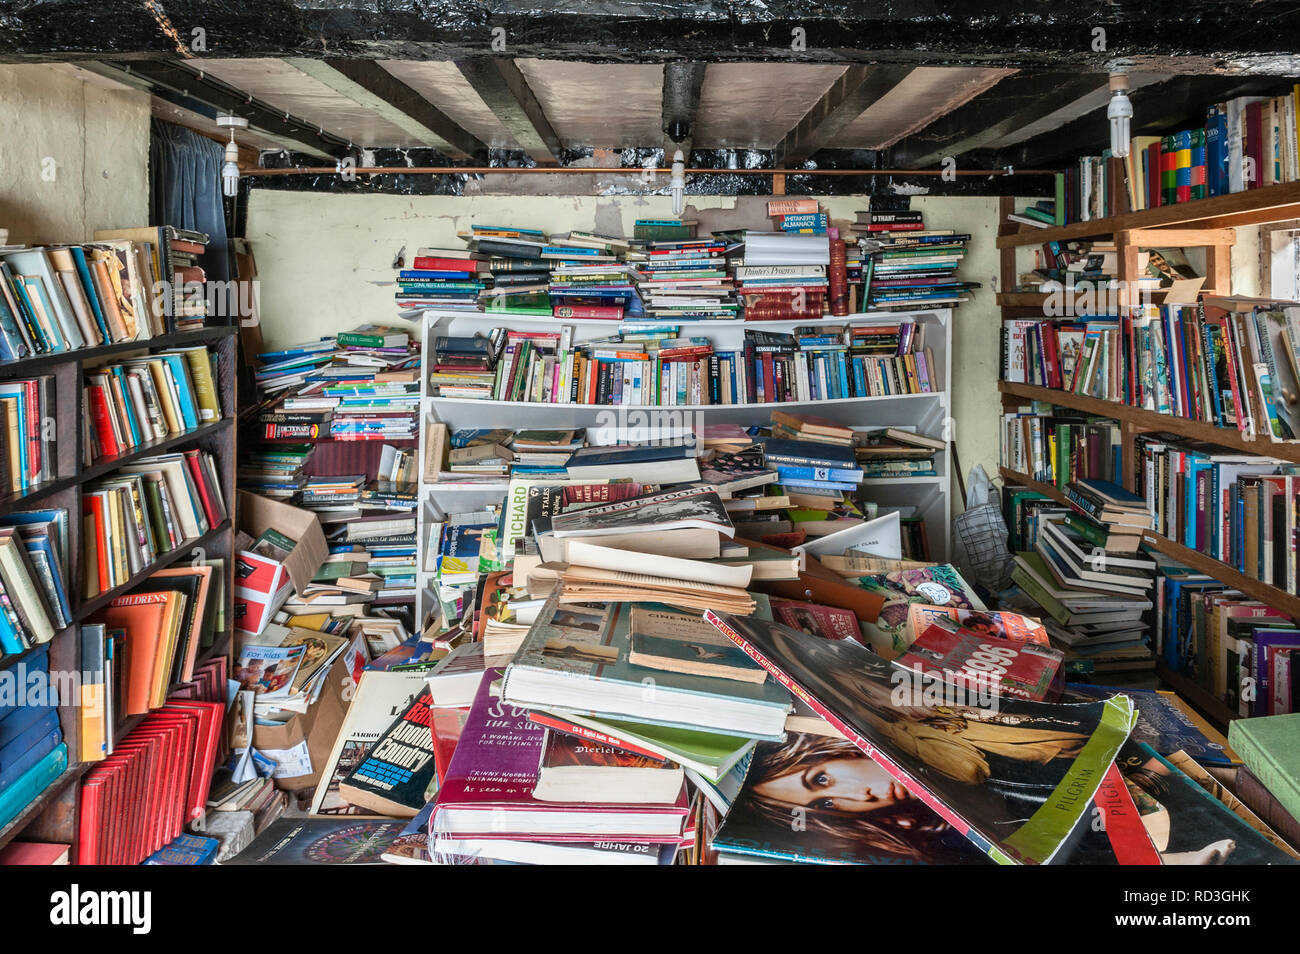 Presteigne, Powys, UK. The cluttered interior of a secondhand bookshop in this small Welsh border town - Stock Image